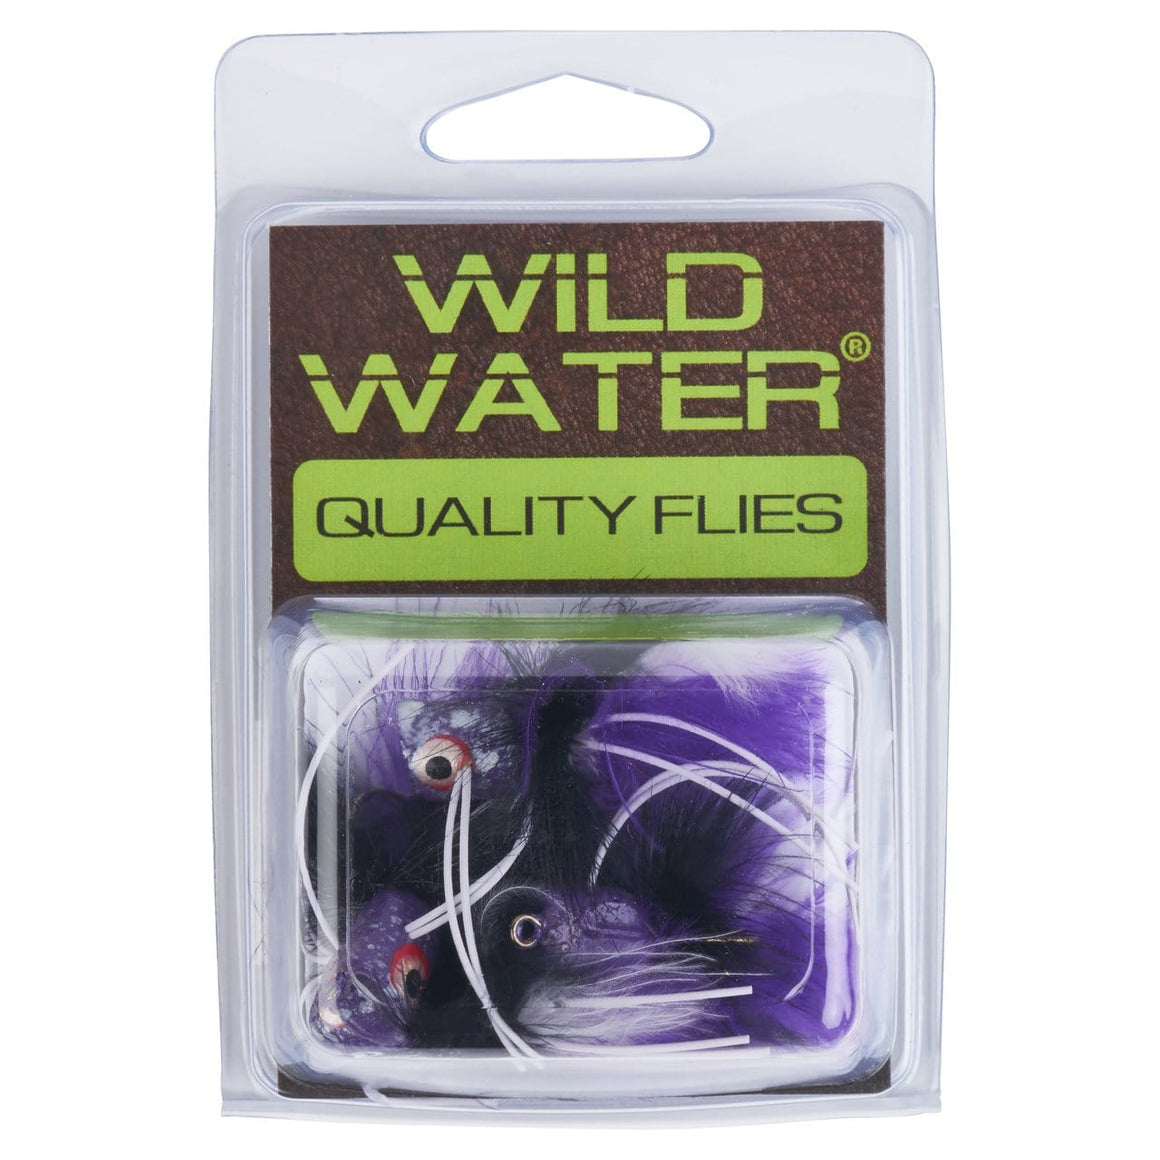 Wild Water Purple and Black Little Fatty by Pultz Poppers, Size 6, Qty. 4